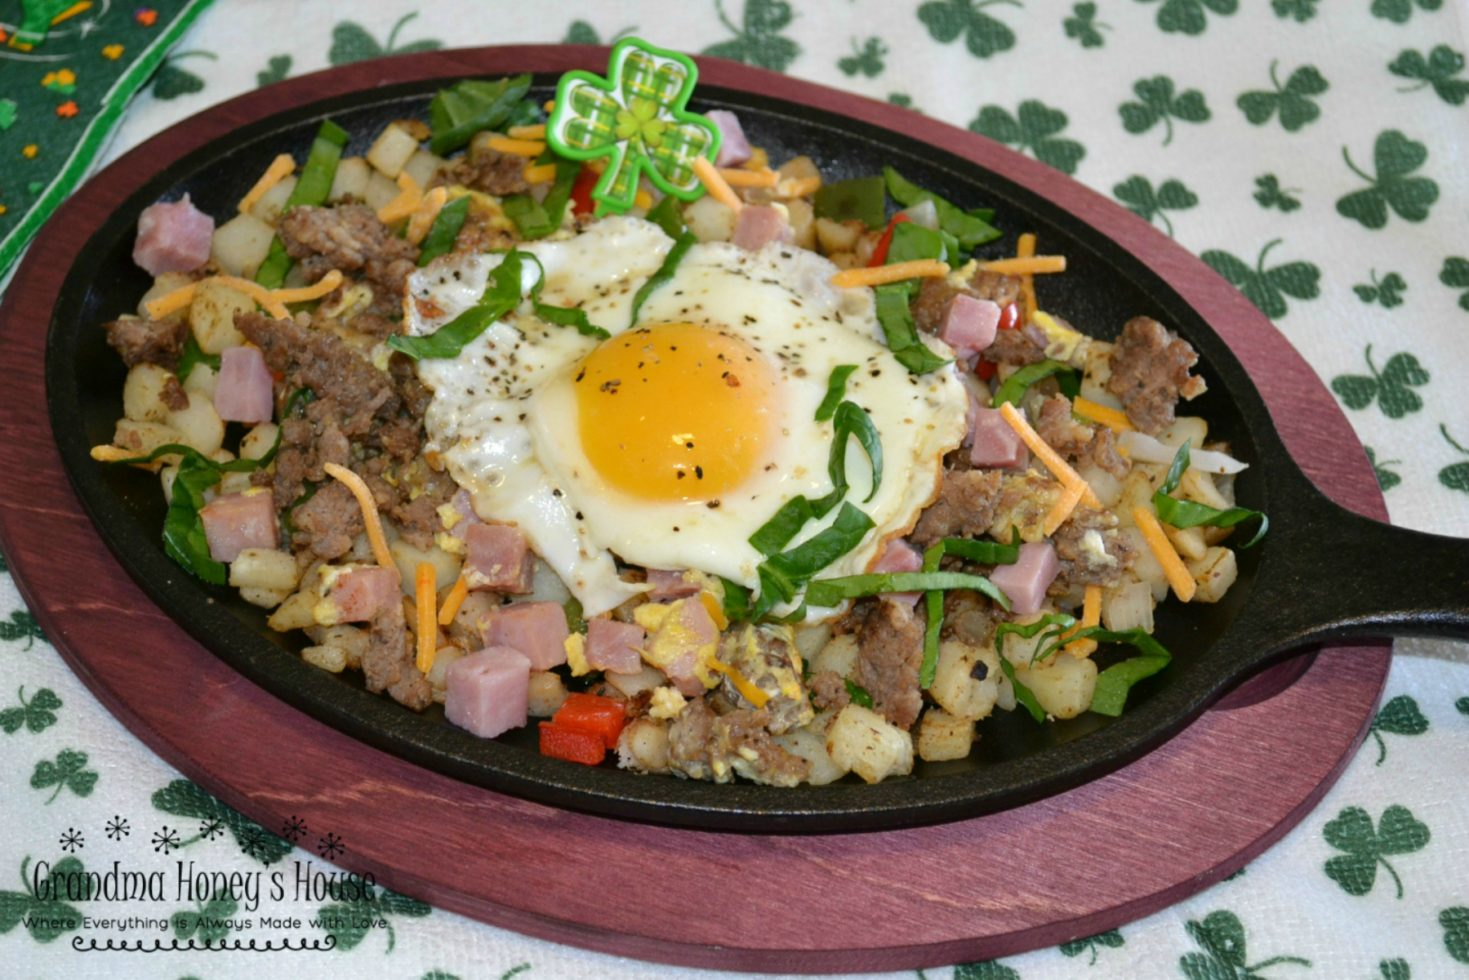 St. Patrick's Day breakfast skillets packed with eggs, meats, veggies, and cheese.